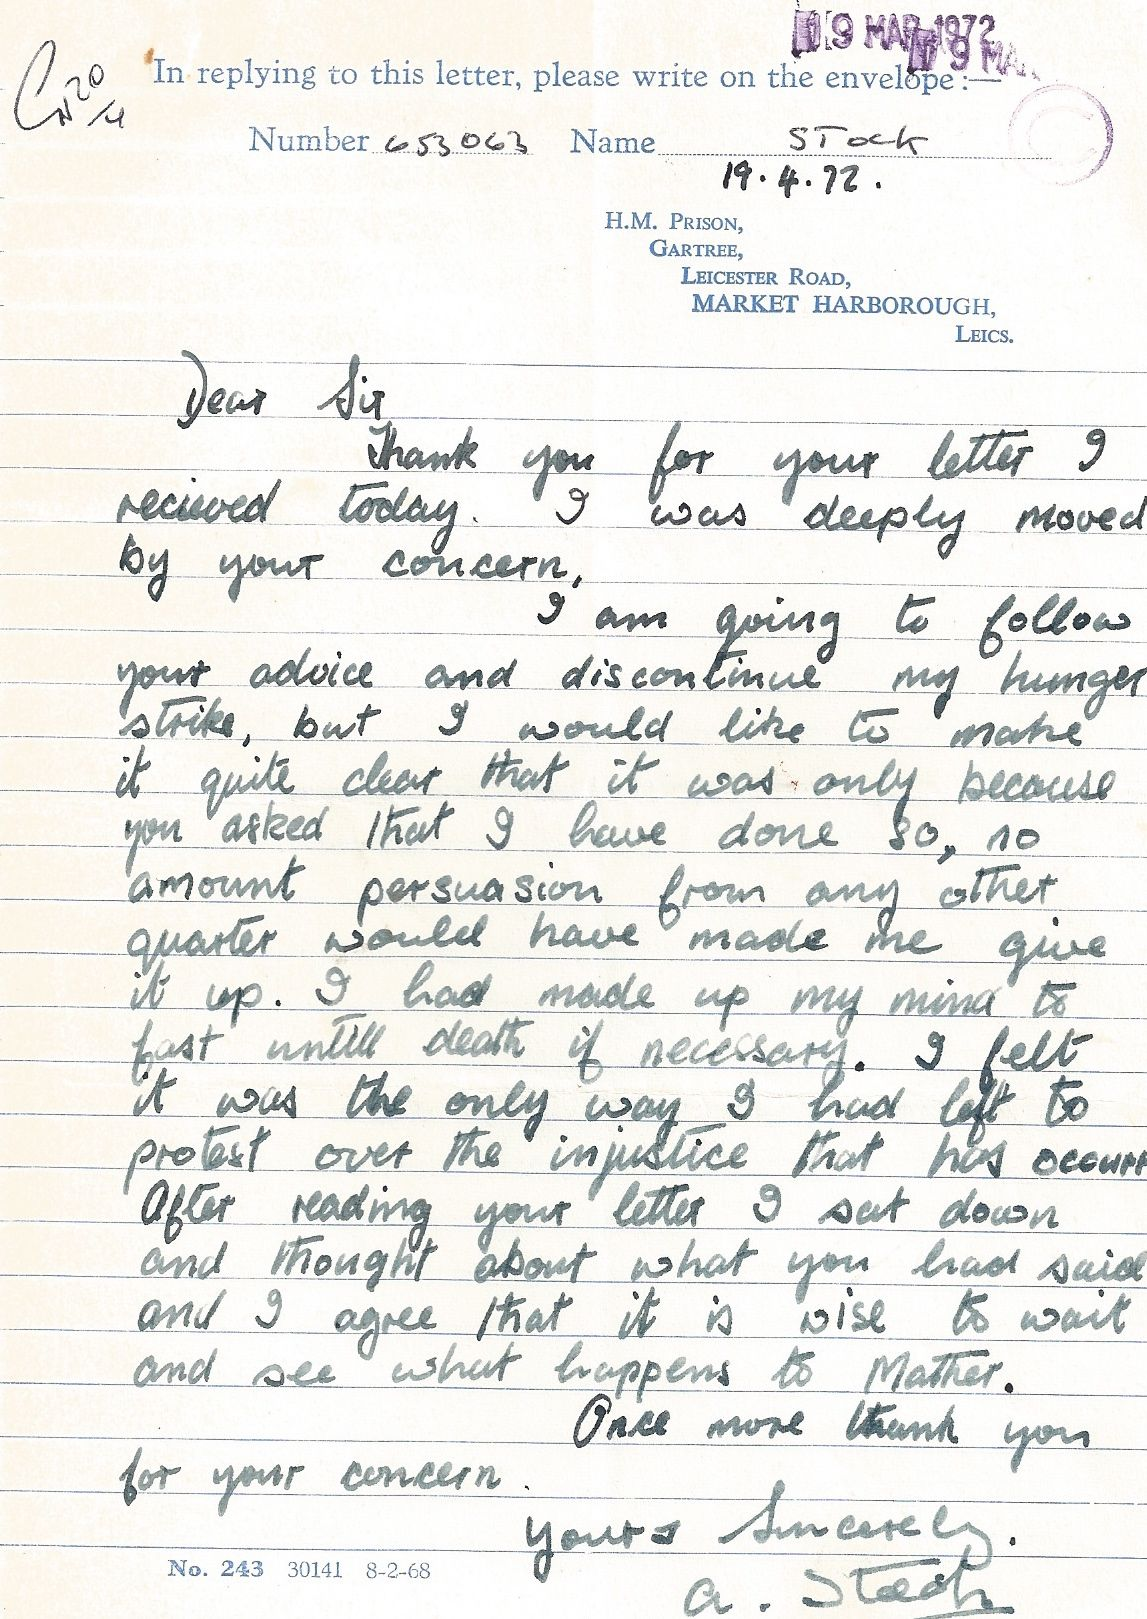 Tony Stock writes from HM Prison Gartree to Tom Sargant of JUSTICE, April 1972